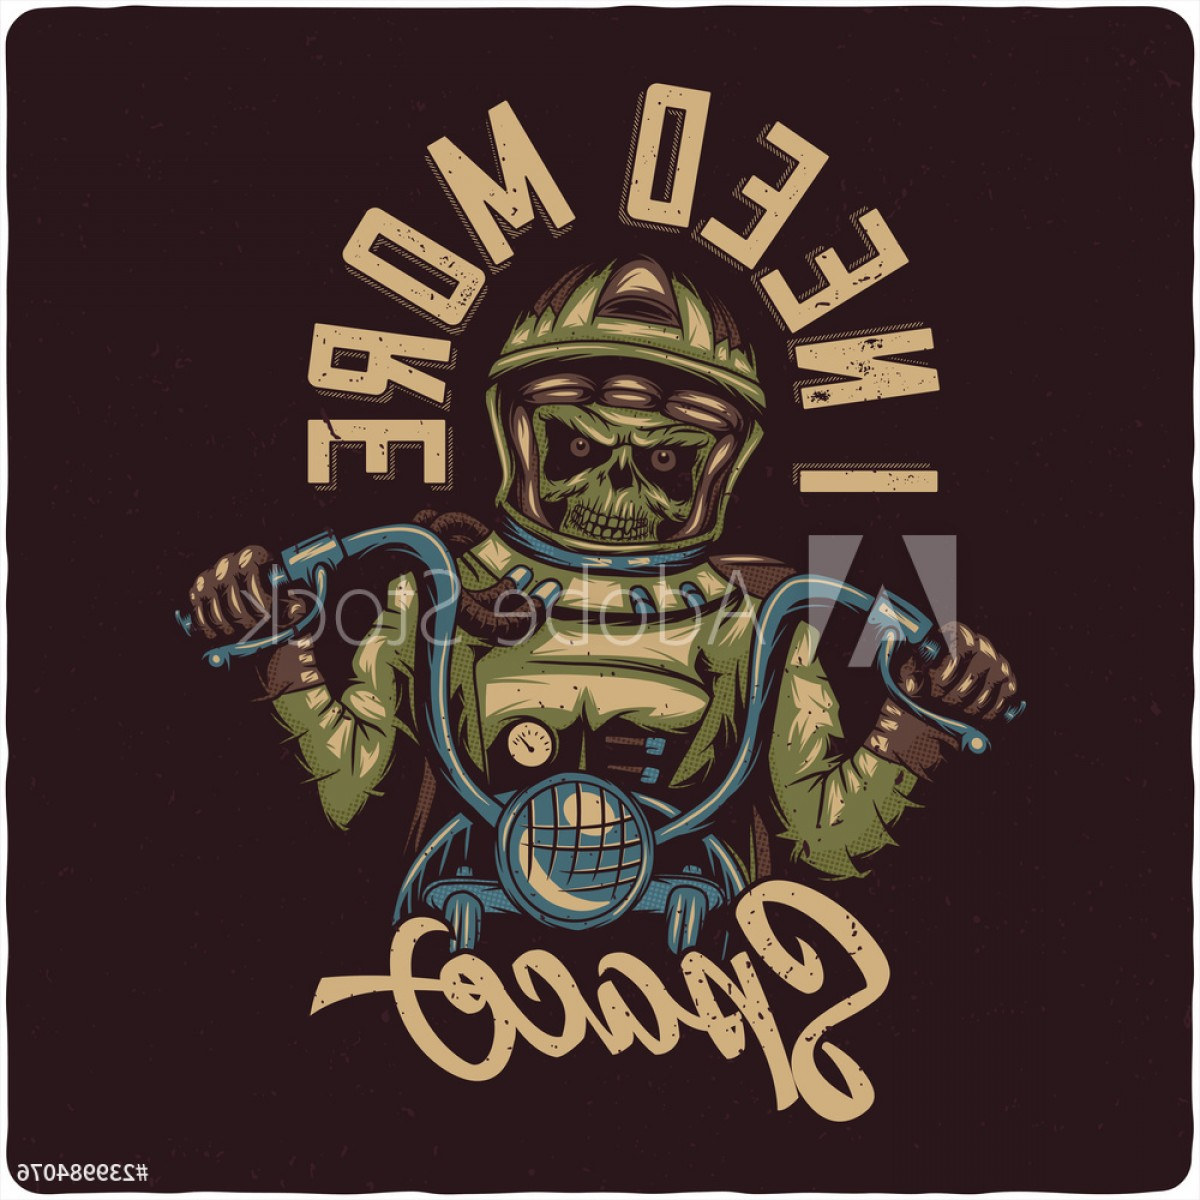 Motorcycle Club Vector: Dead Astronaut On The Motorcycle Vintage Motorcycle Club Vector T Shirt Or Poster Design